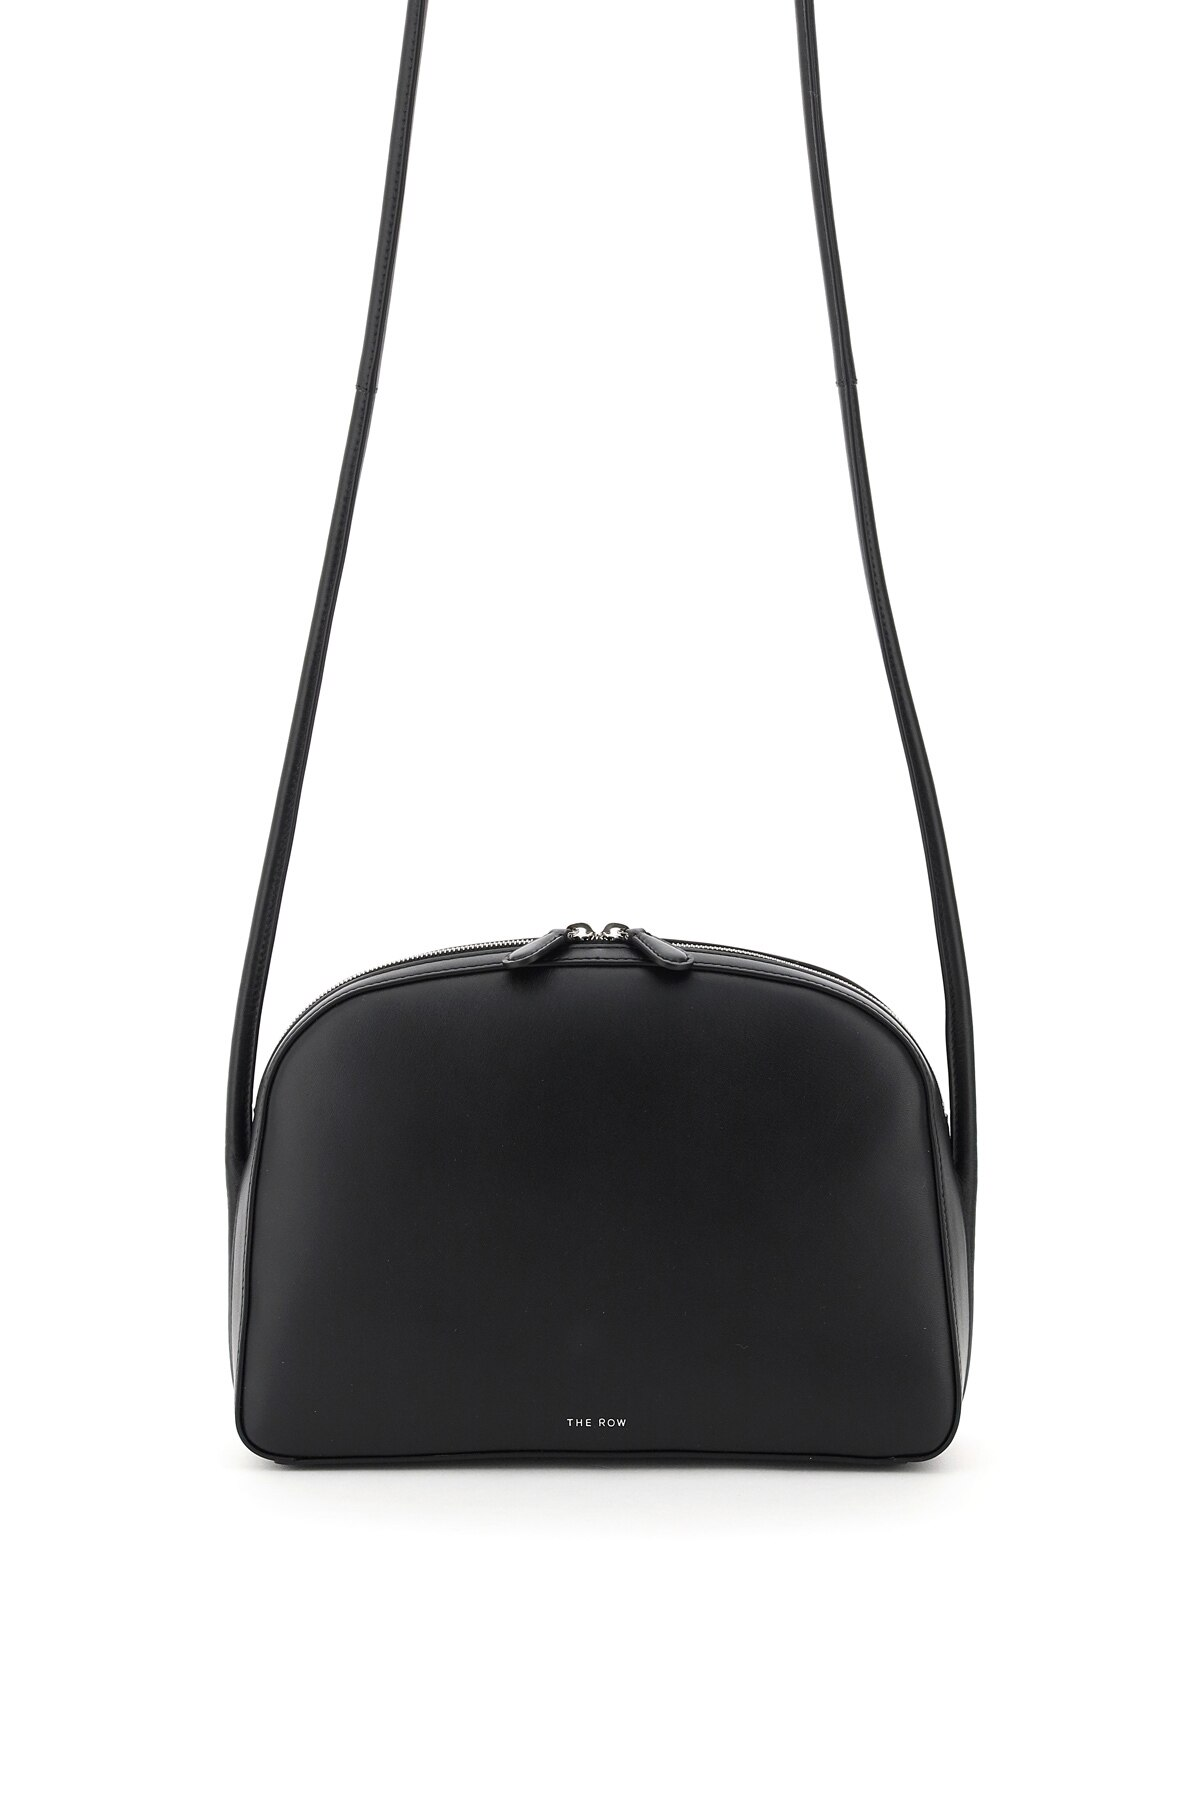 THE ROW SINGLE MIGNON SHOULDER BAG OS Black Leather